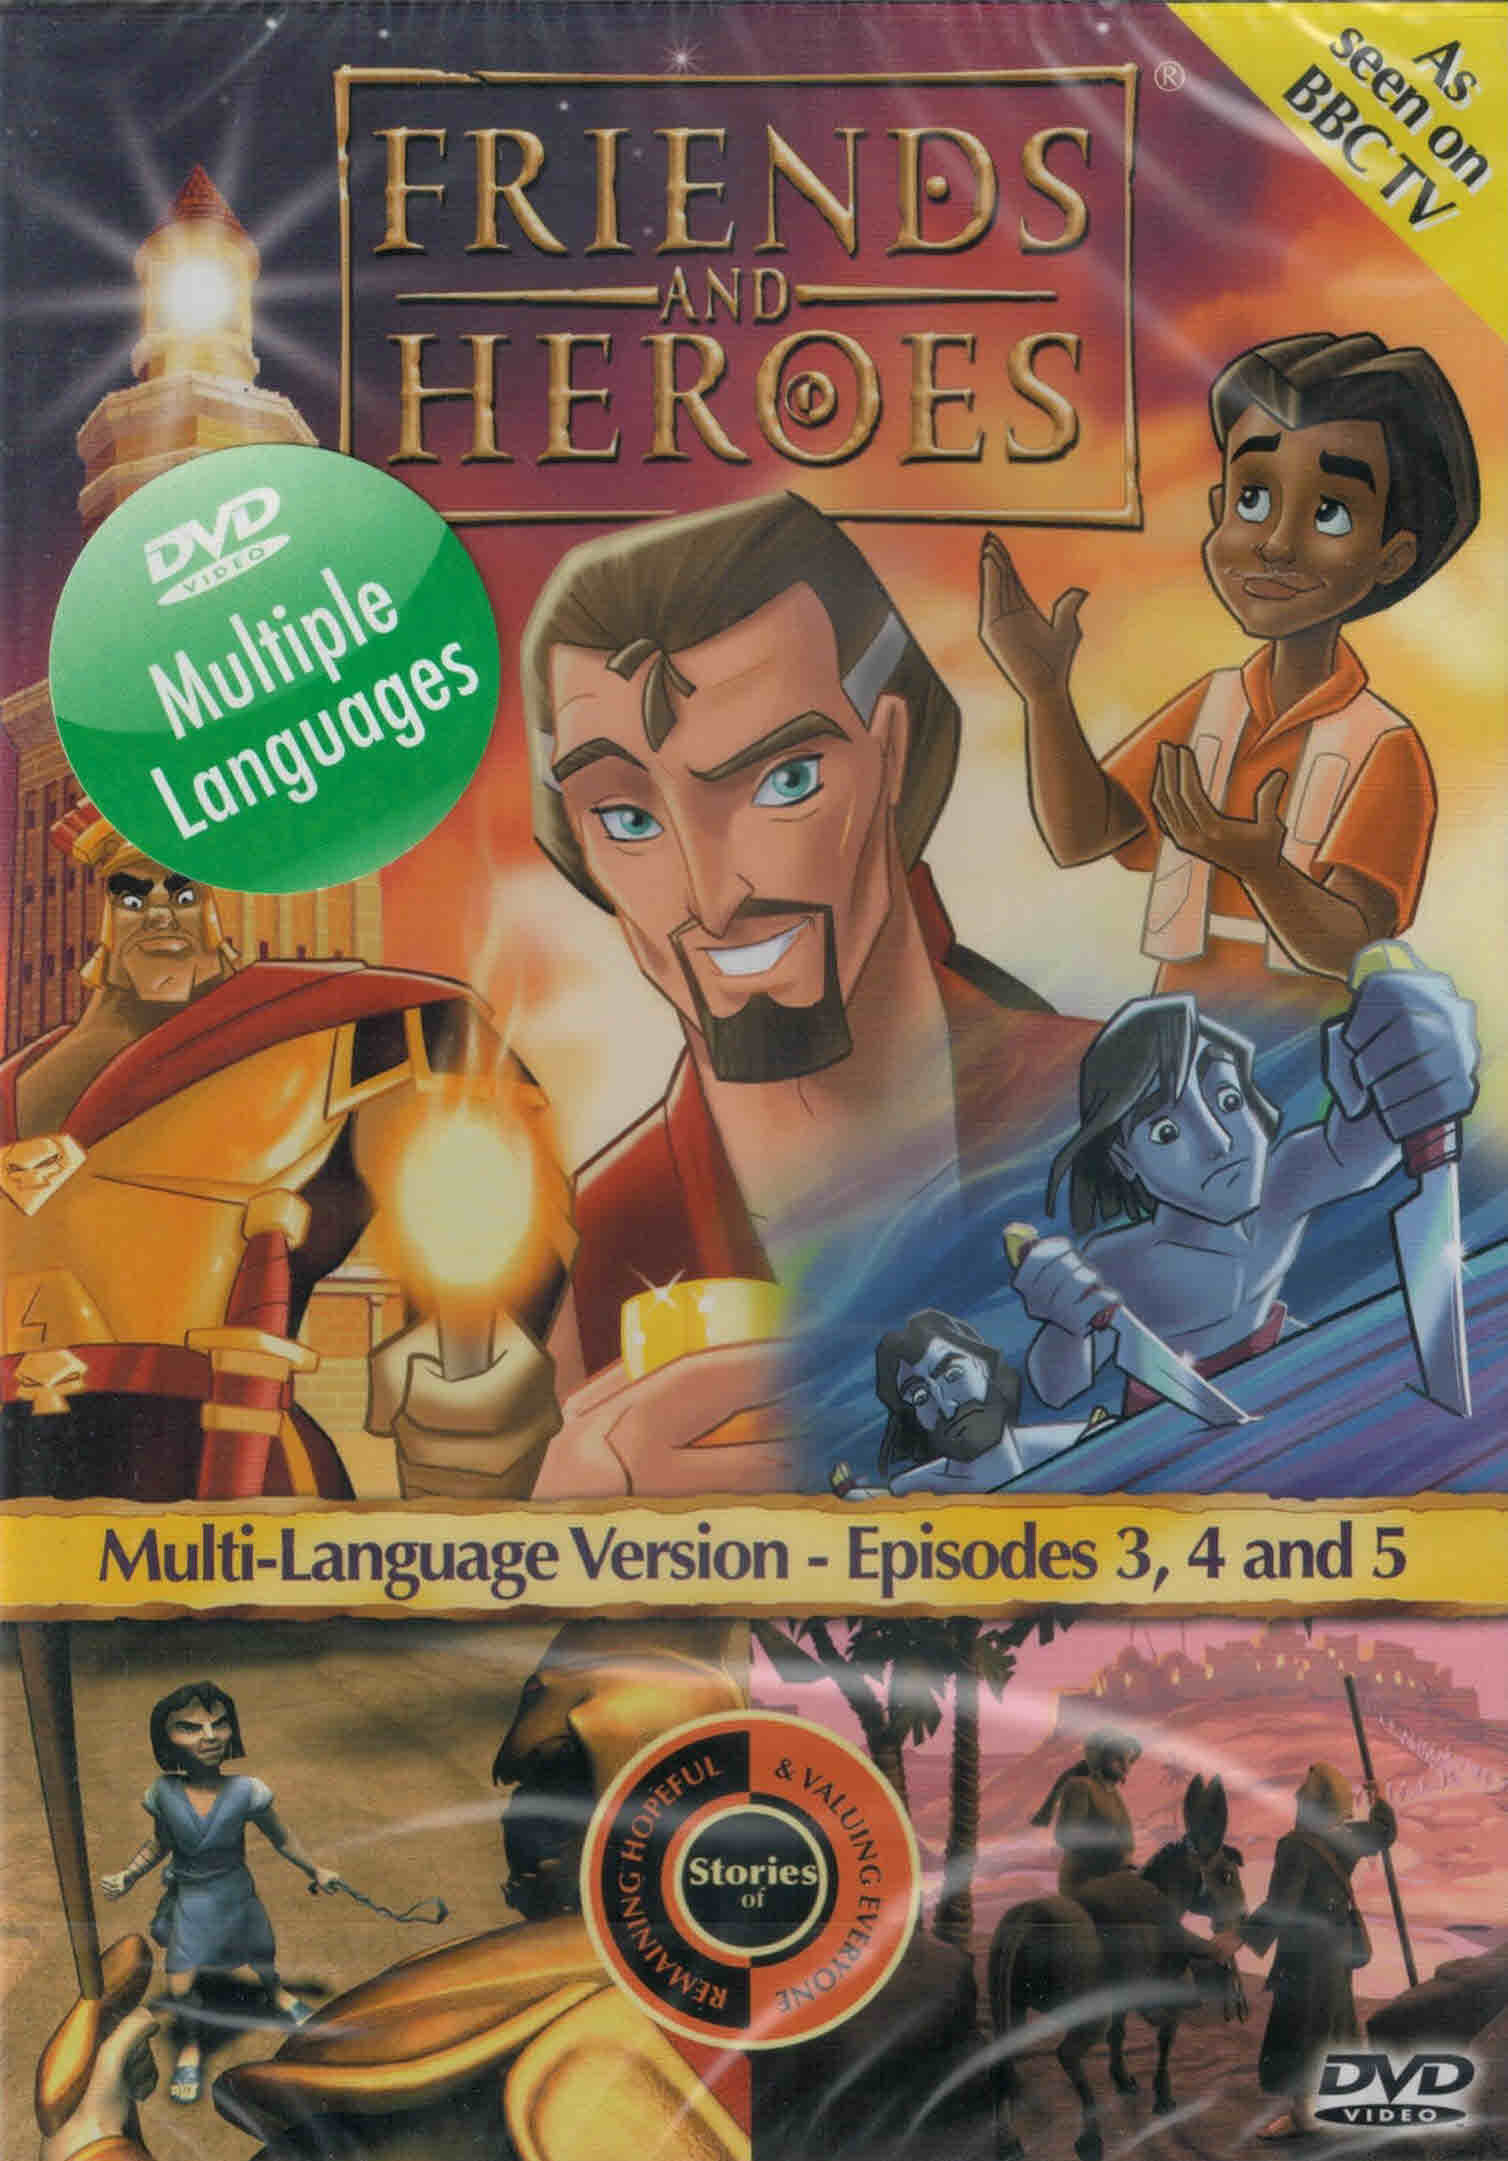 DVD Friends and Heroes Episodes 3-4-5